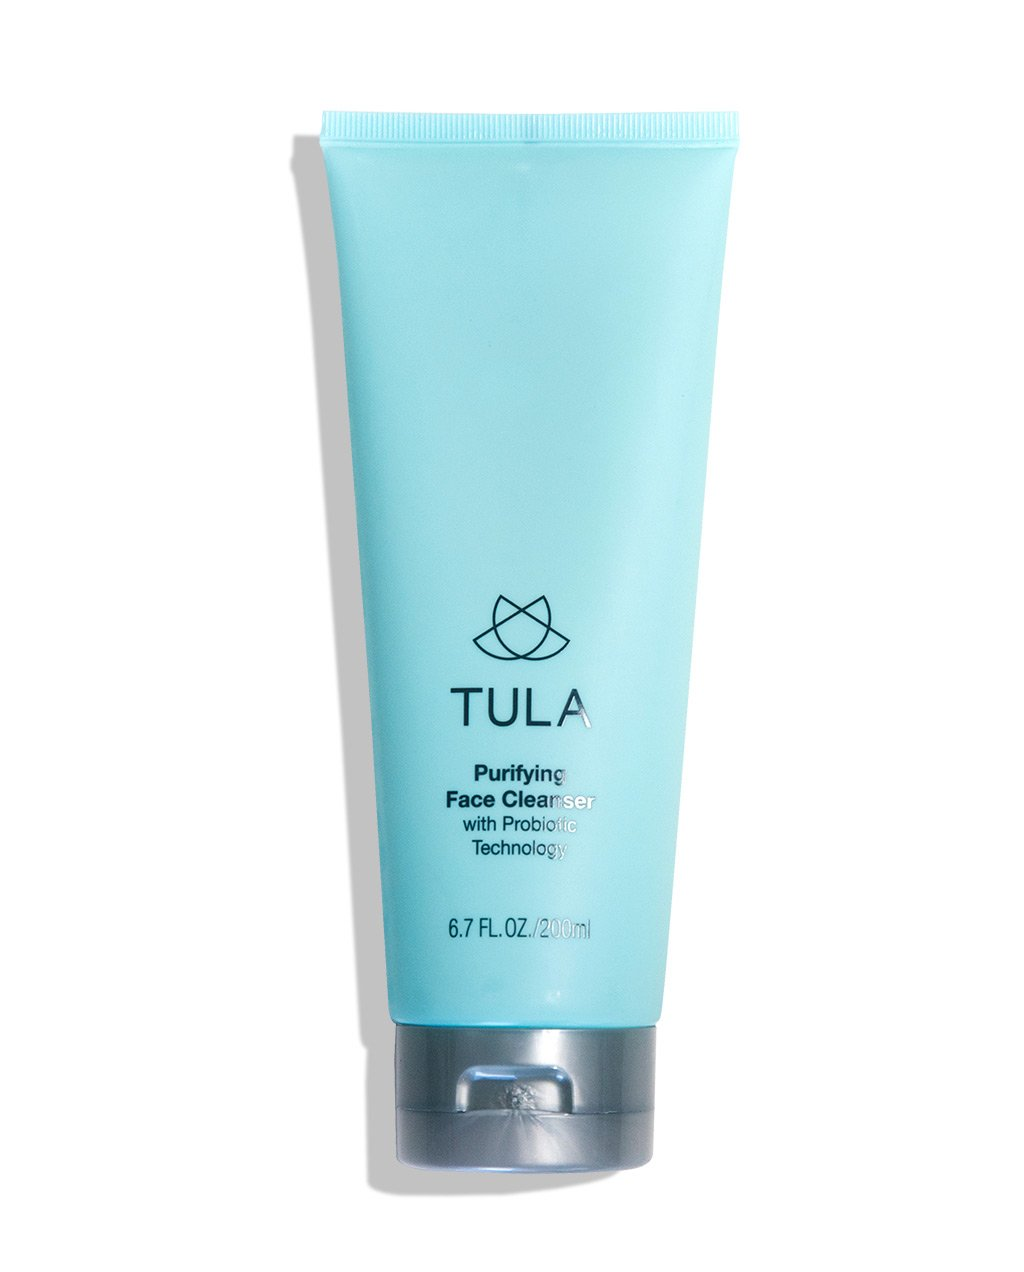 TULA Probiotic Purifying Face Cleanser | Gentle and Effective Face Wash, Makeup Remover, Nourishing and Hydrating | 6.7 oz. by TULA